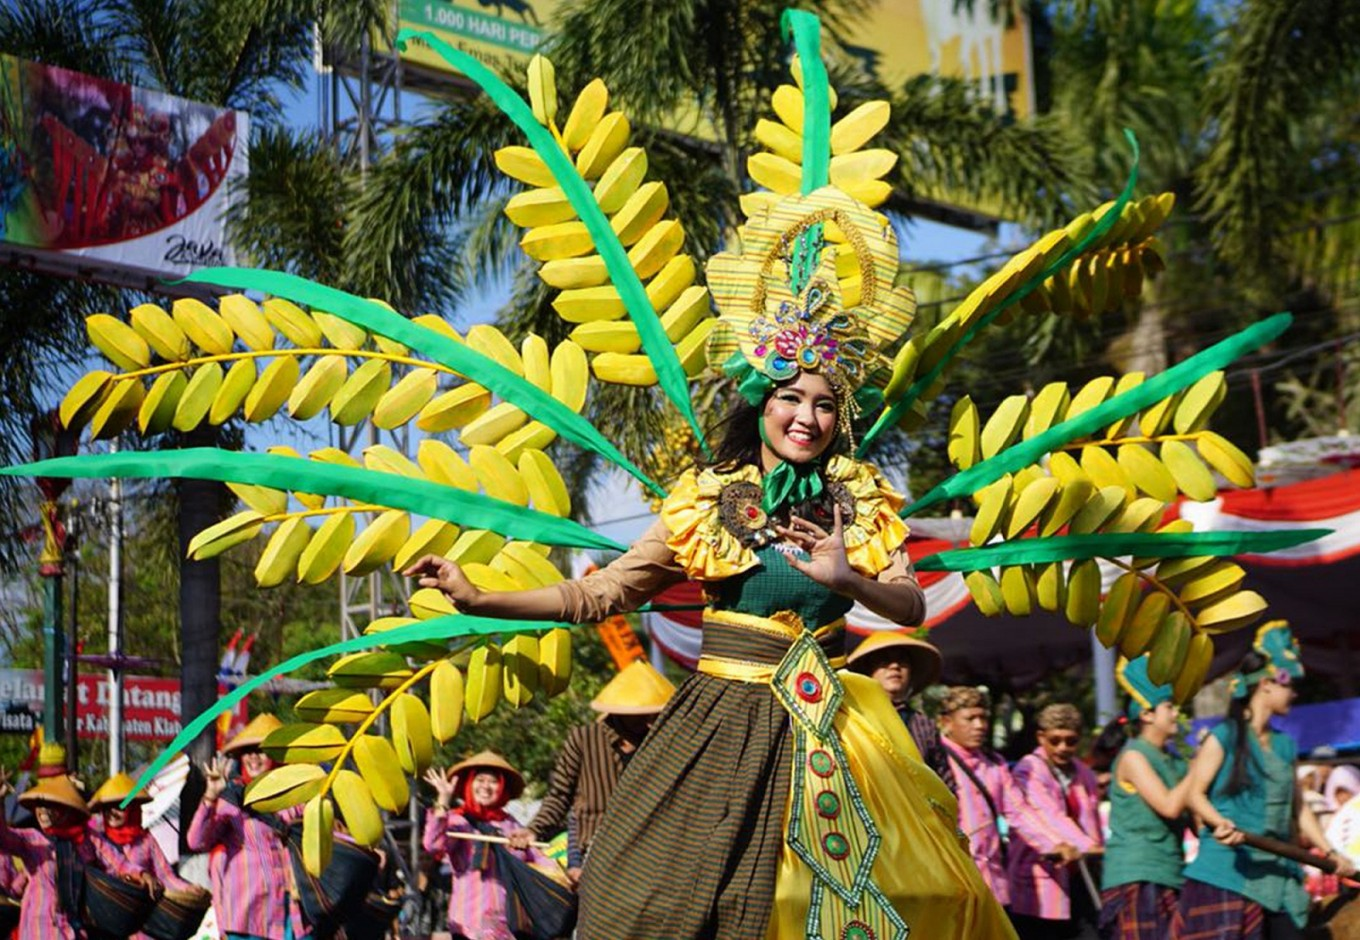 A participant in the Klaten Lurik Carnival wears a nature-themed costume.